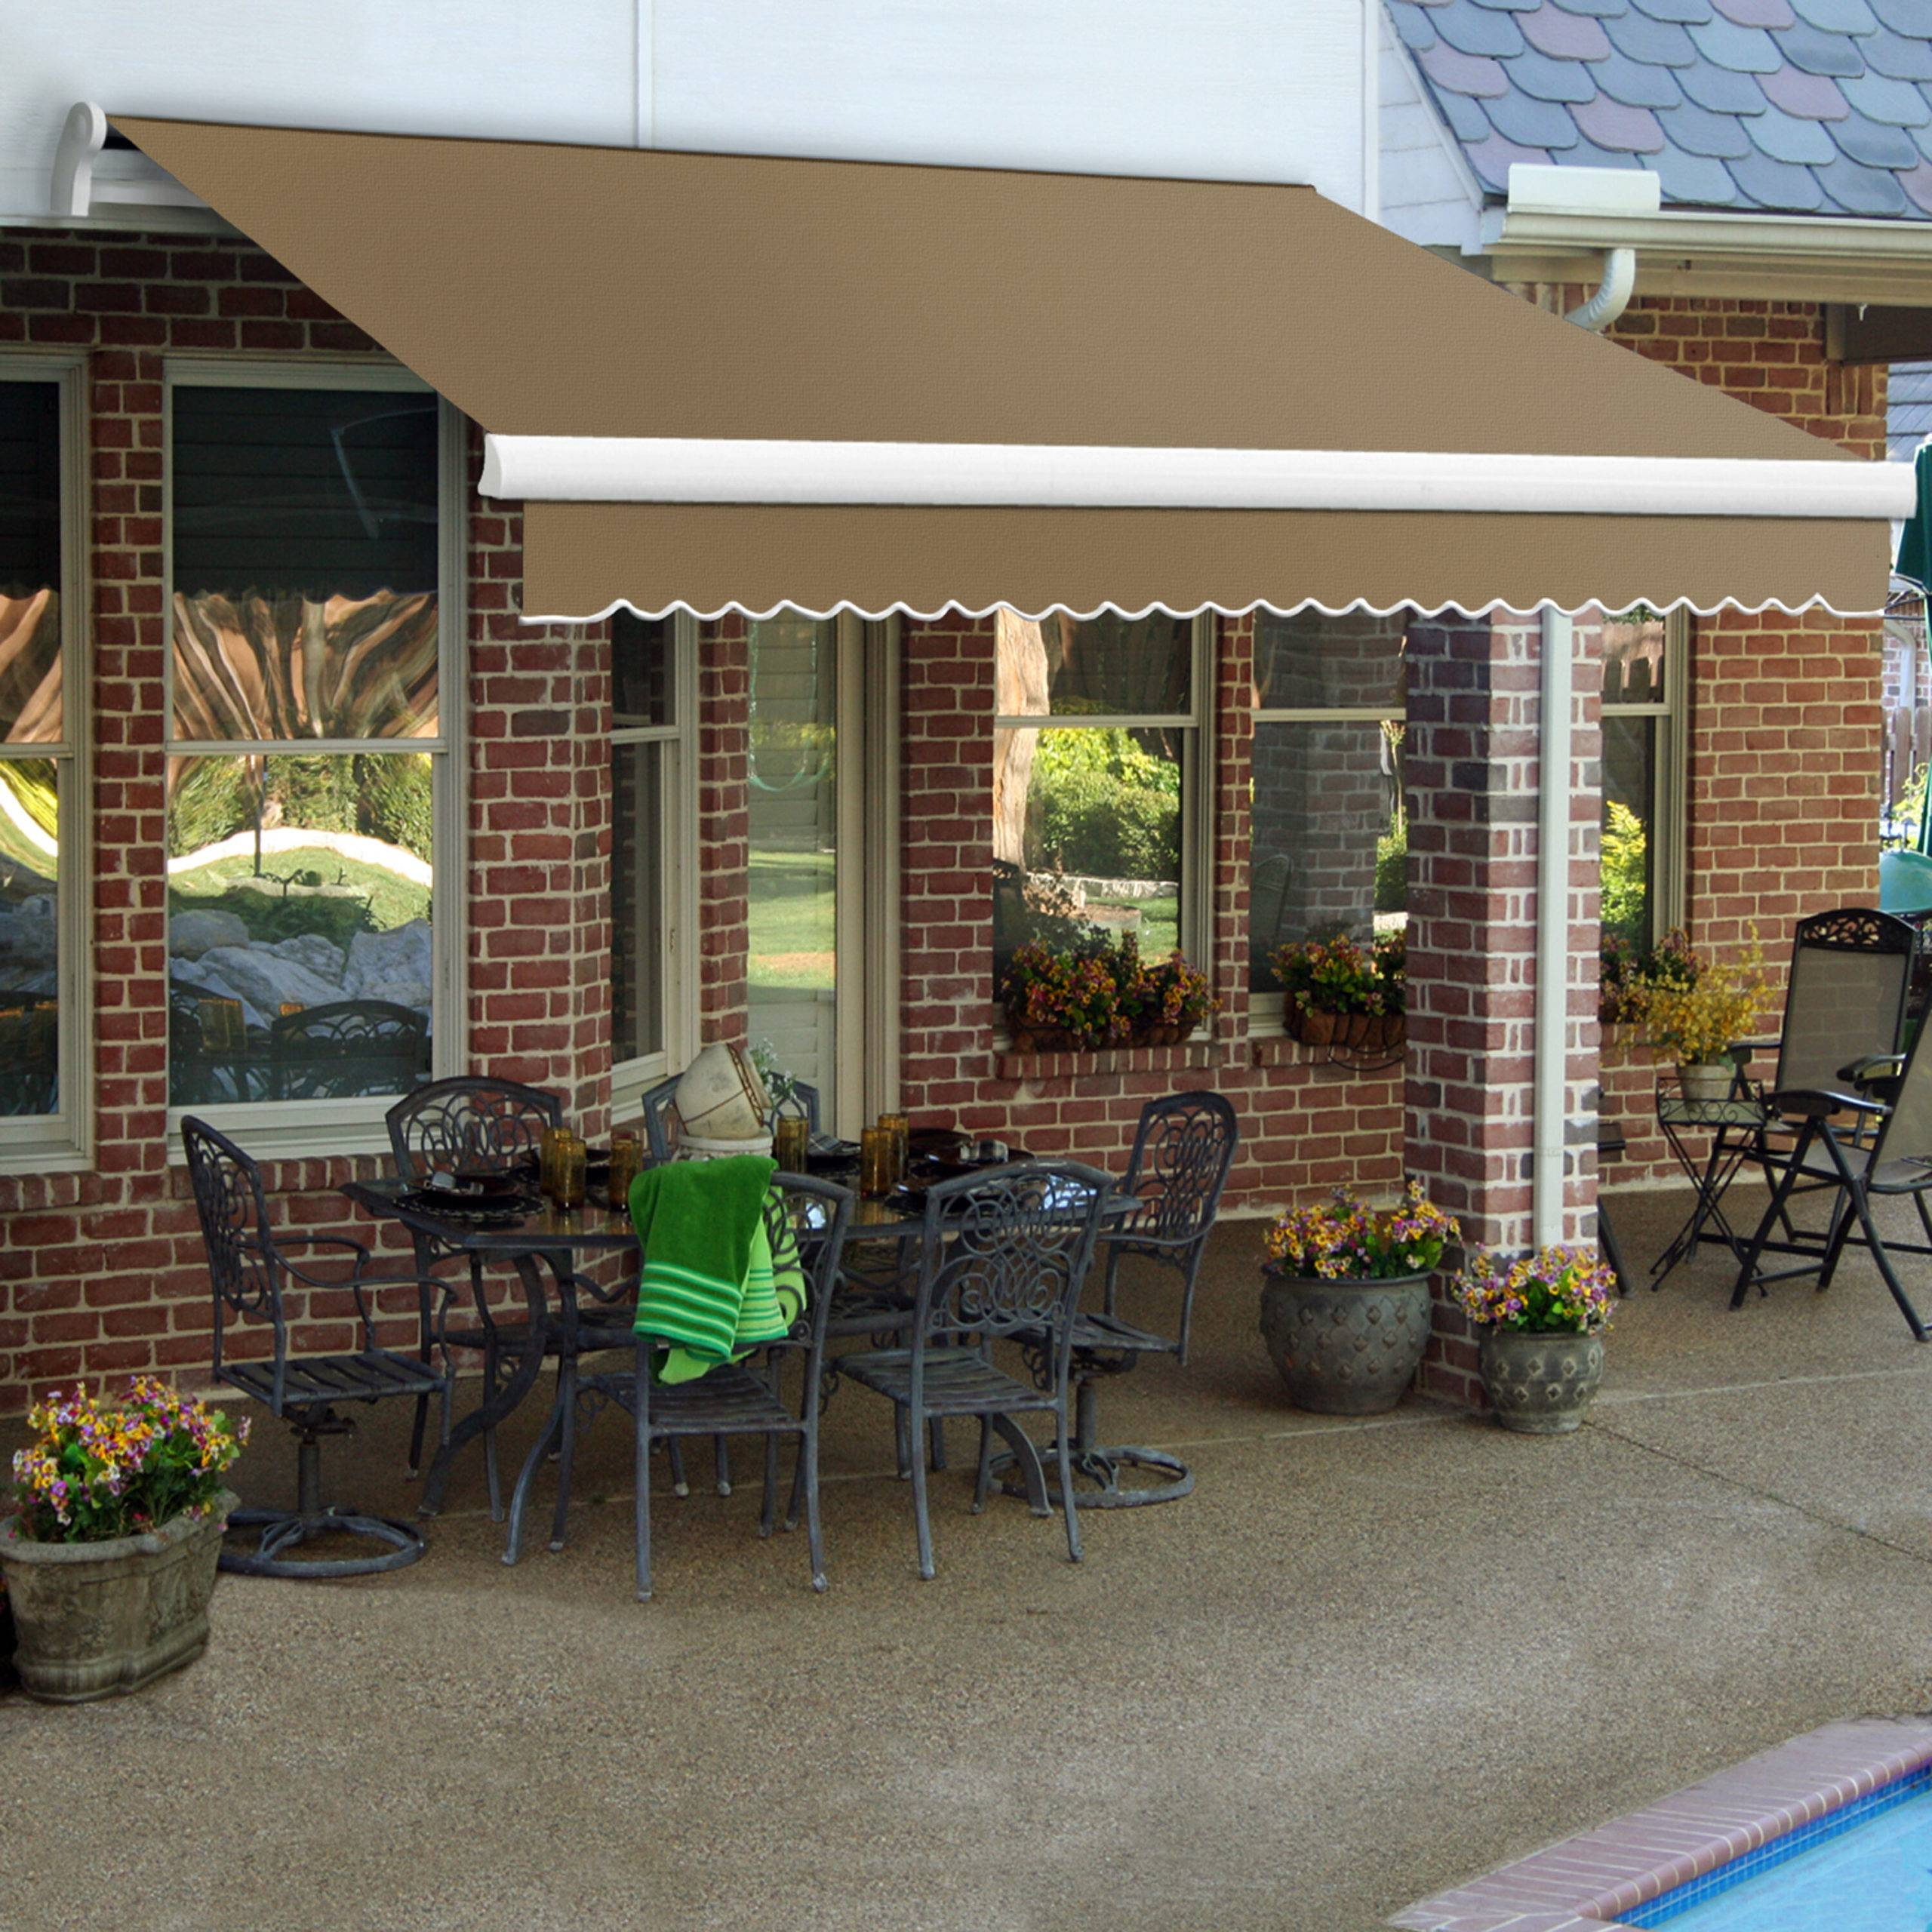 Outer deck with potted plants